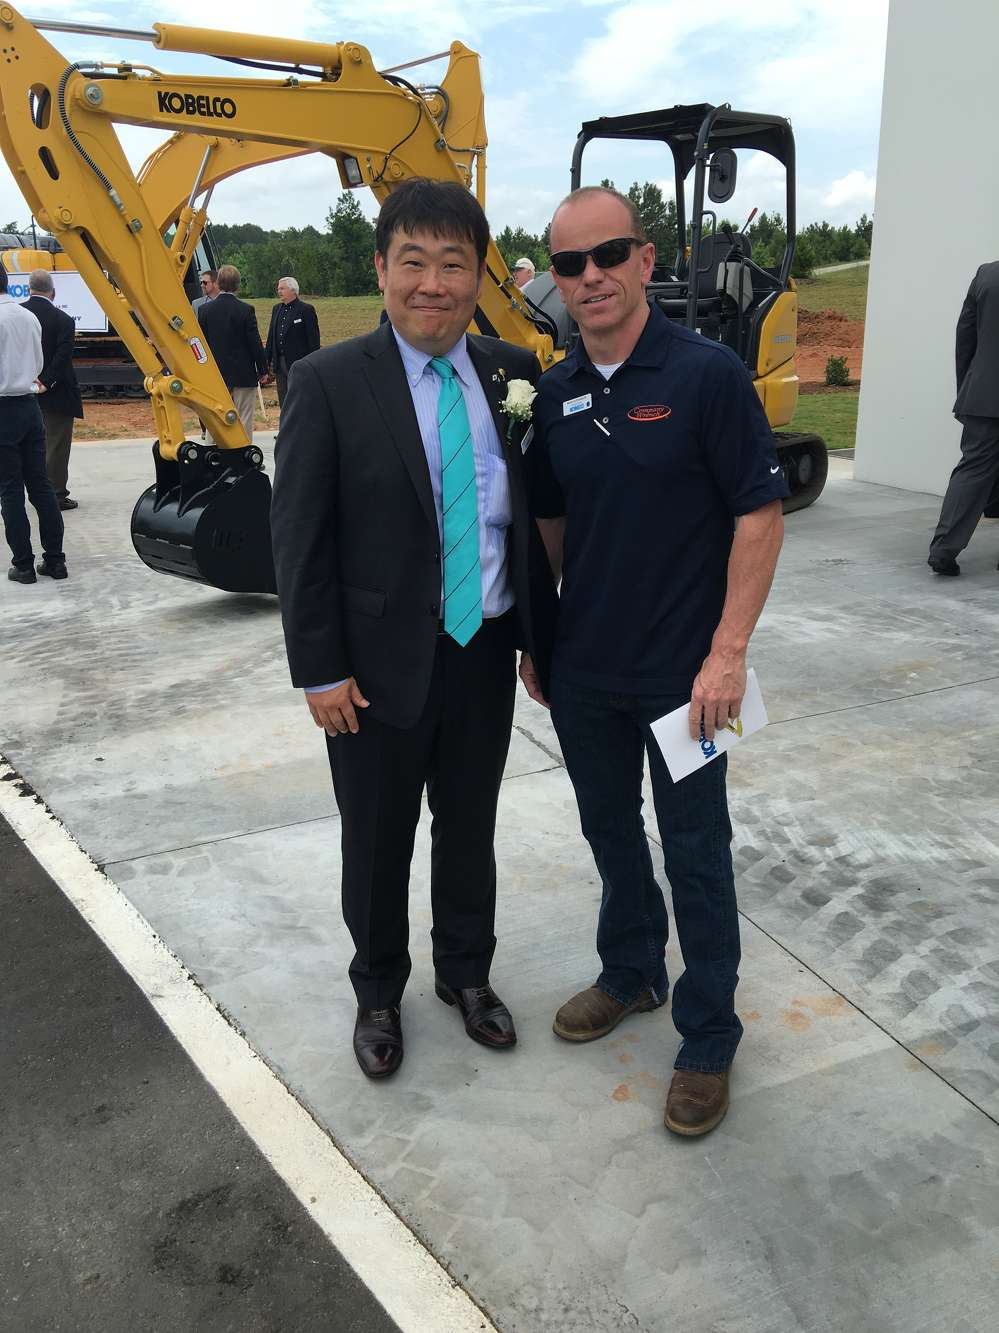 Pete Morita (L), president and CEO Kobelco Construction Machinery USA Inc., catches up with Brad Hutchinson, president of Company Wrench.